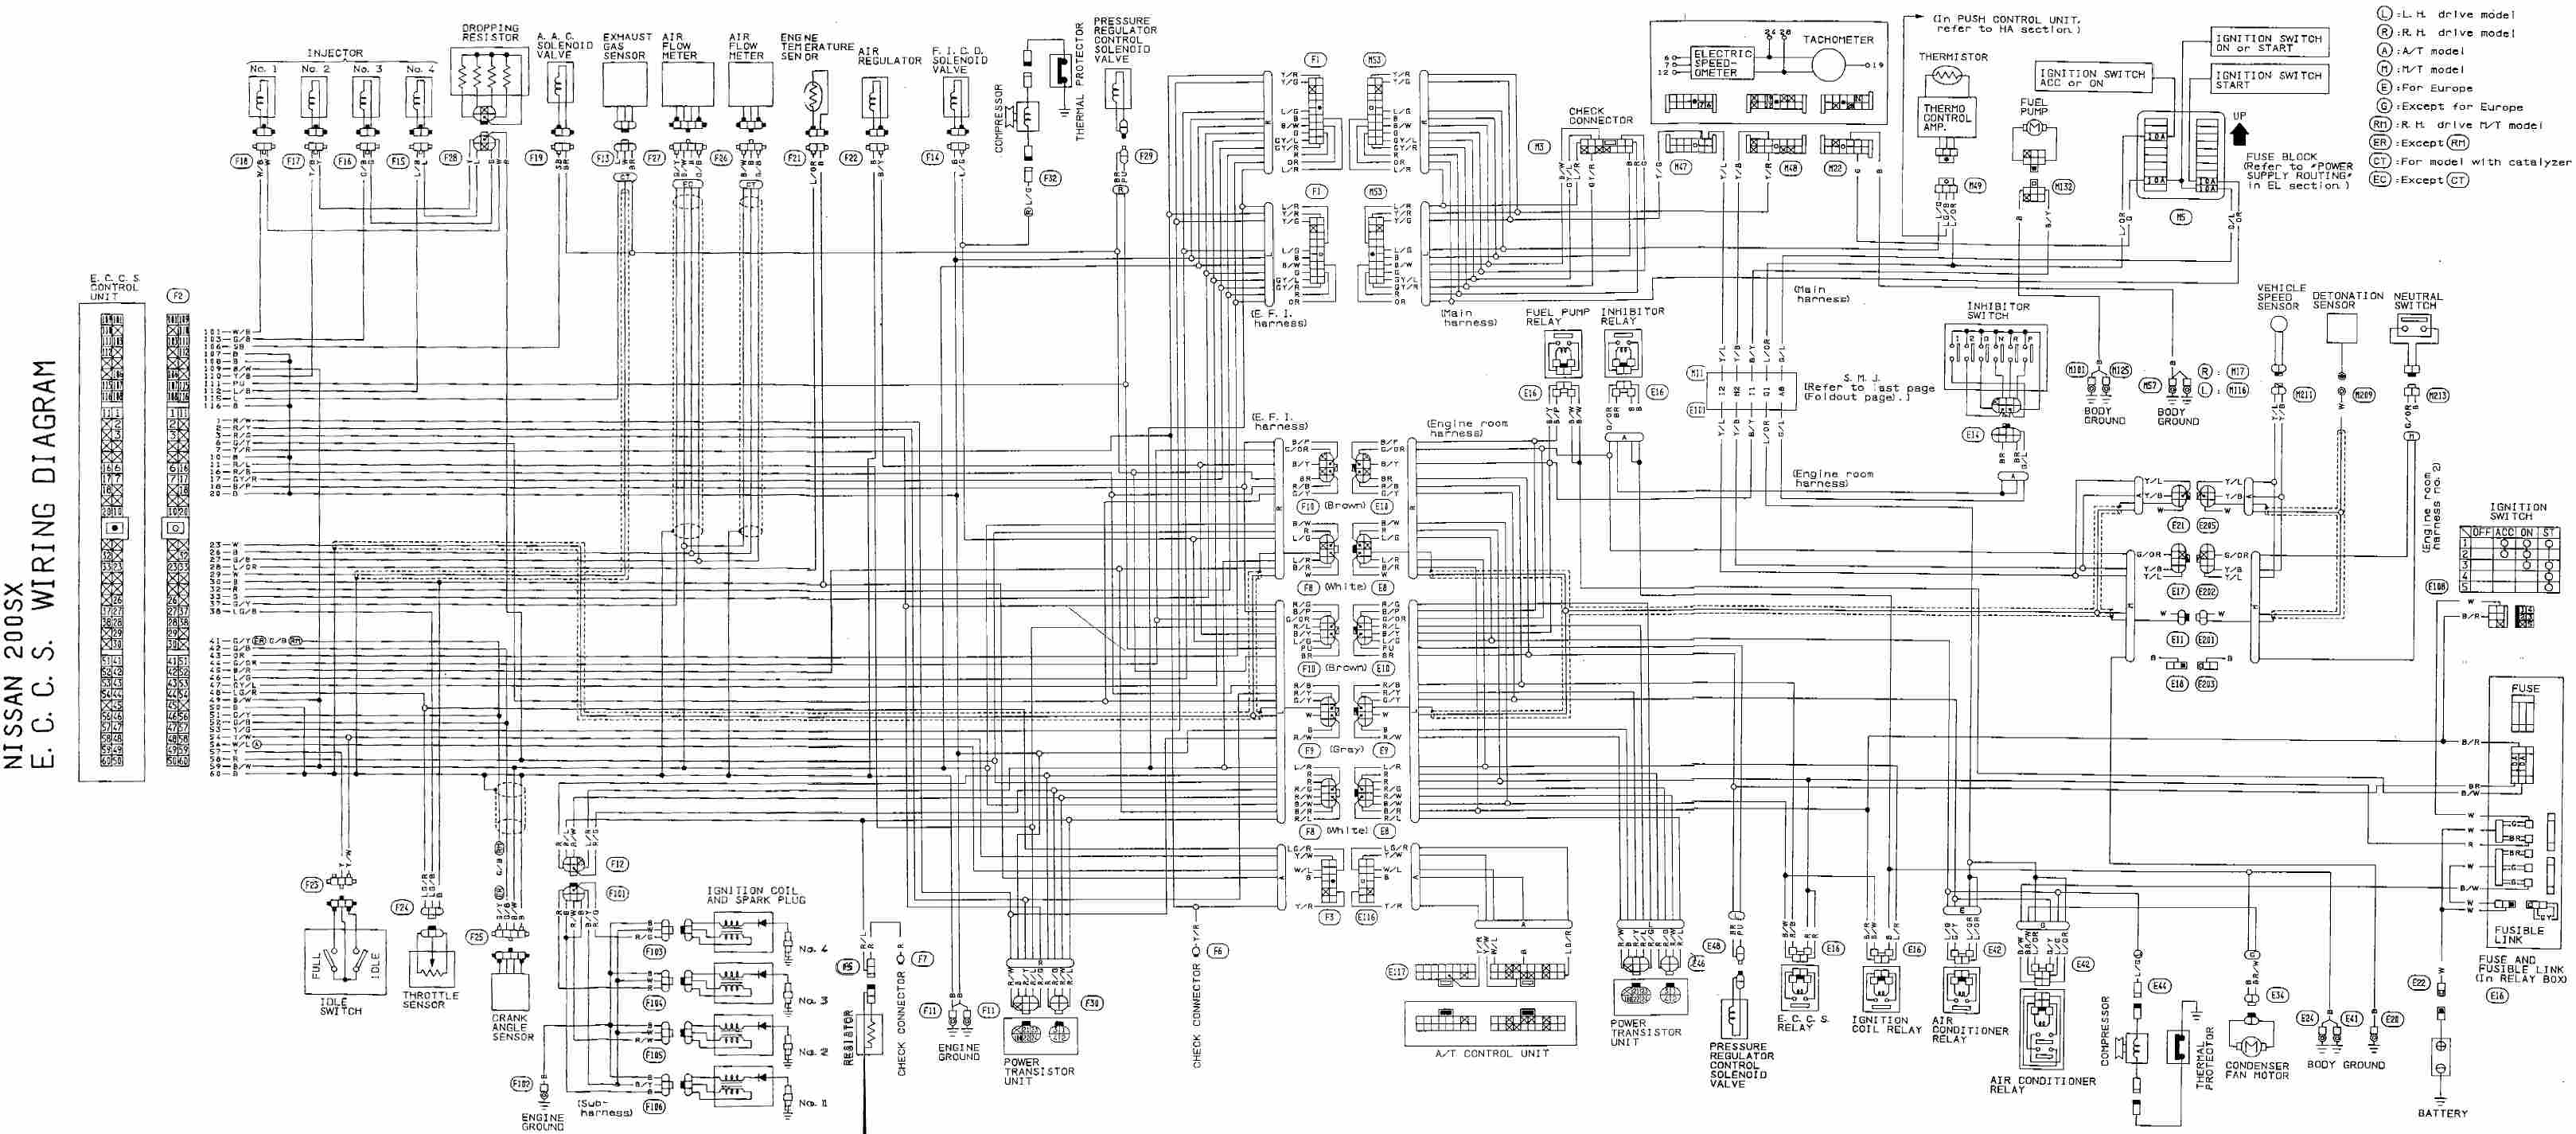 complete eccs wiring diagram of nissan 200x?t=1508500919 nissan car manuals, wiring diagrams pdf & fault codes 300zx wiring diagram at honlapkeszites.co